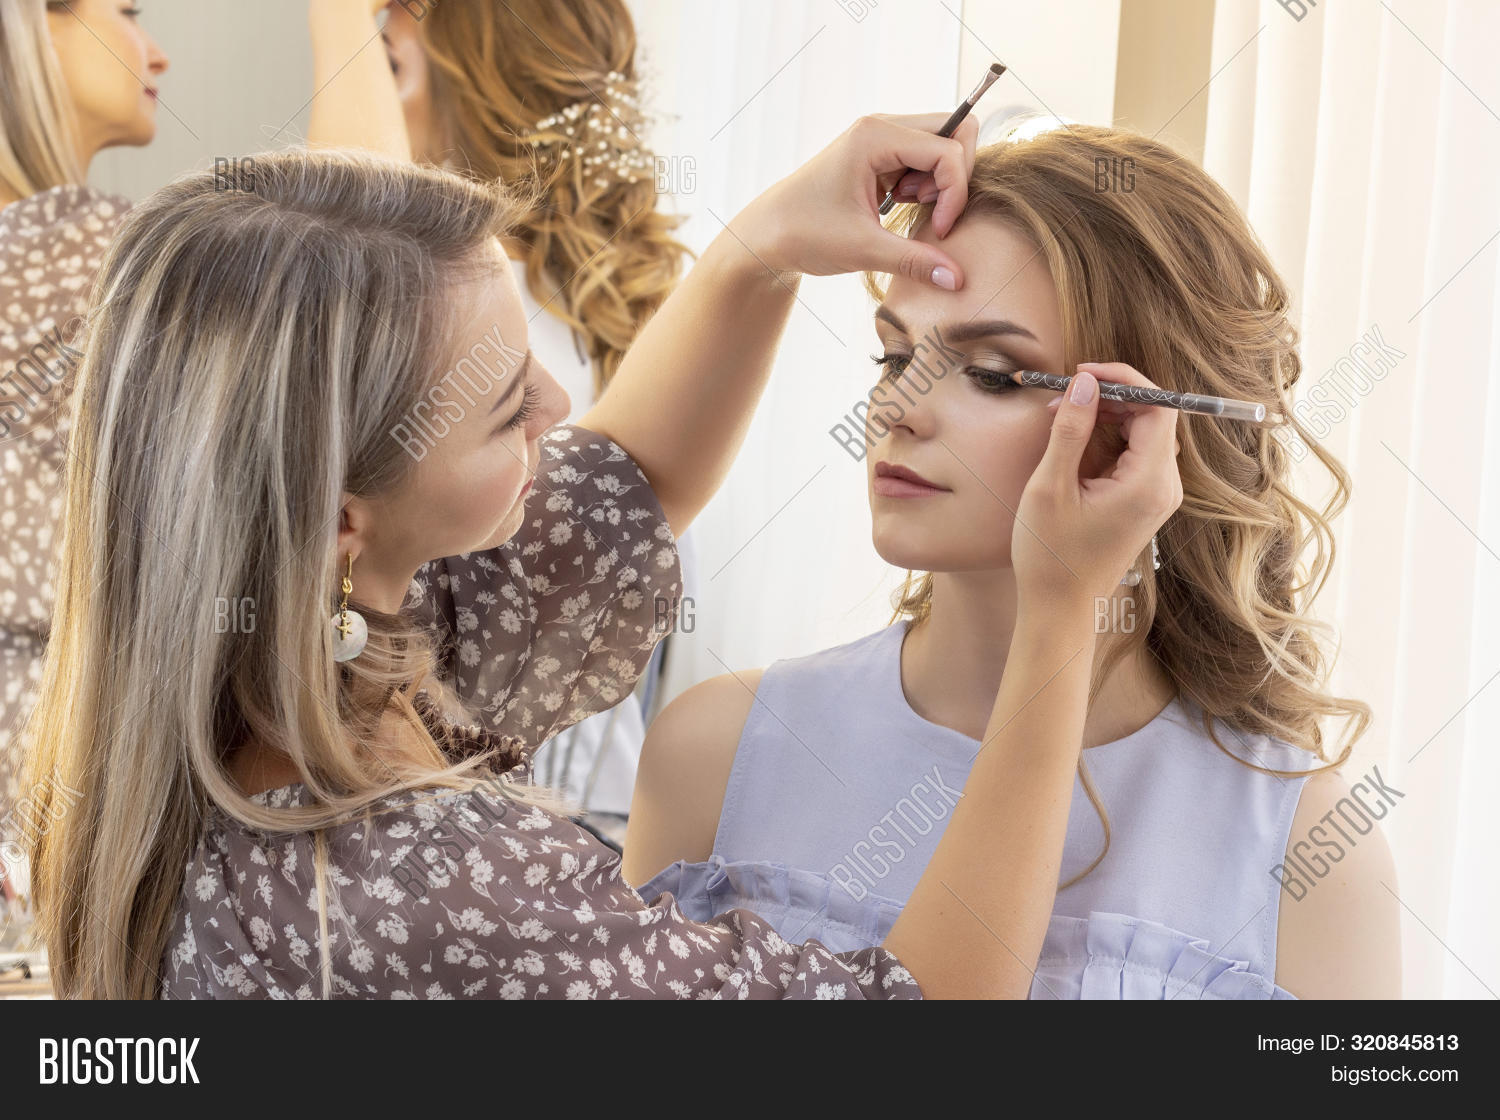 adult,application,apply,applying,artist,attractive,beautician,beautiful,beauty,bride,bright,brunette,brush,care,caucasian,client,cosmetic,cute,eye,eyeshadow,face,fashion,female,girl,glamour,hair,hand,lady,lip,lipstick,make,make-up,makeup,mascara,model,people,portrait,powder,preparation,pretty,professional,salon,sexy,skin,studio,style,wedding,white,woman,work